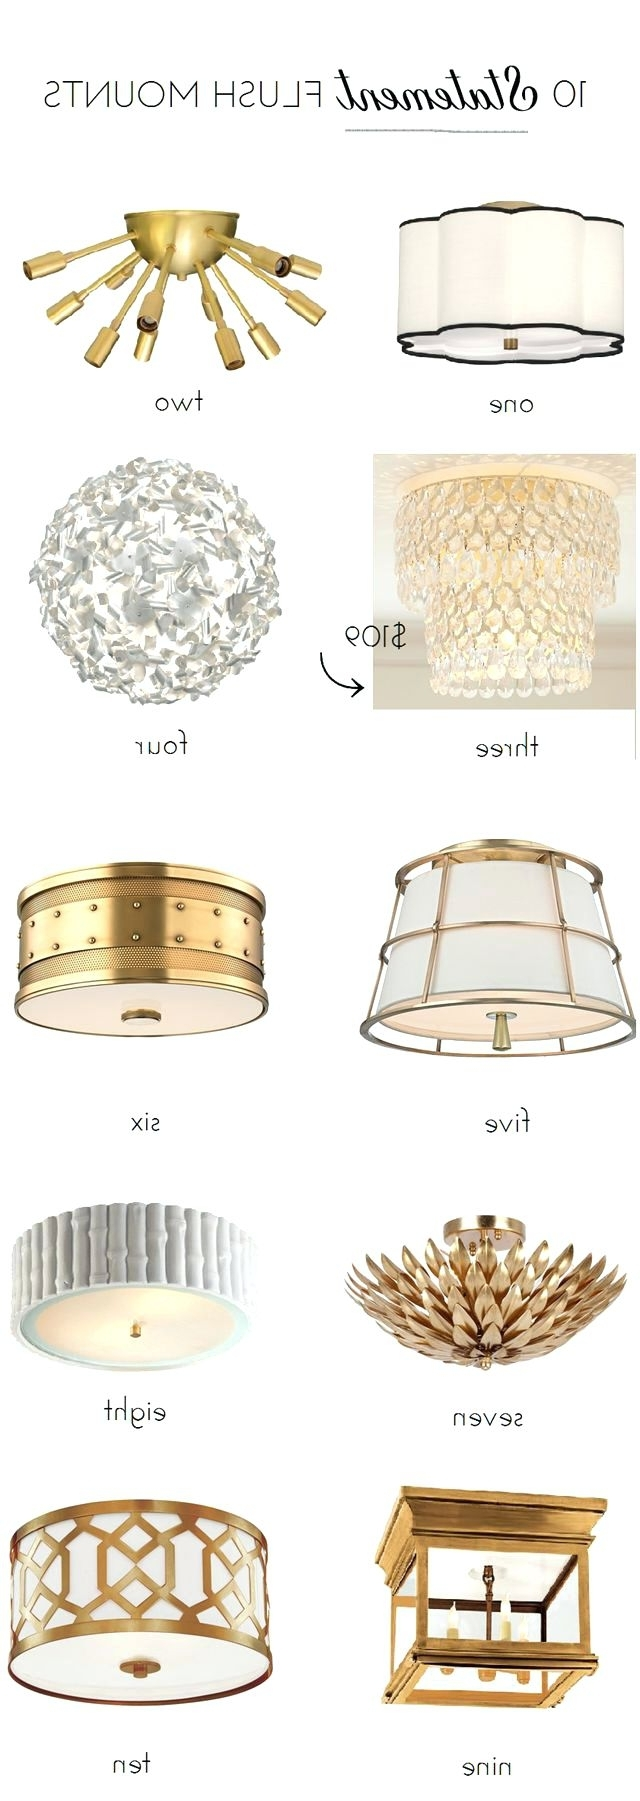 Popular Chandeliers ~ Chandeliers For Low Ceilings Uk Crystal Lighting In Small Chandeliers For Low Ceilings (View 14 of 20)